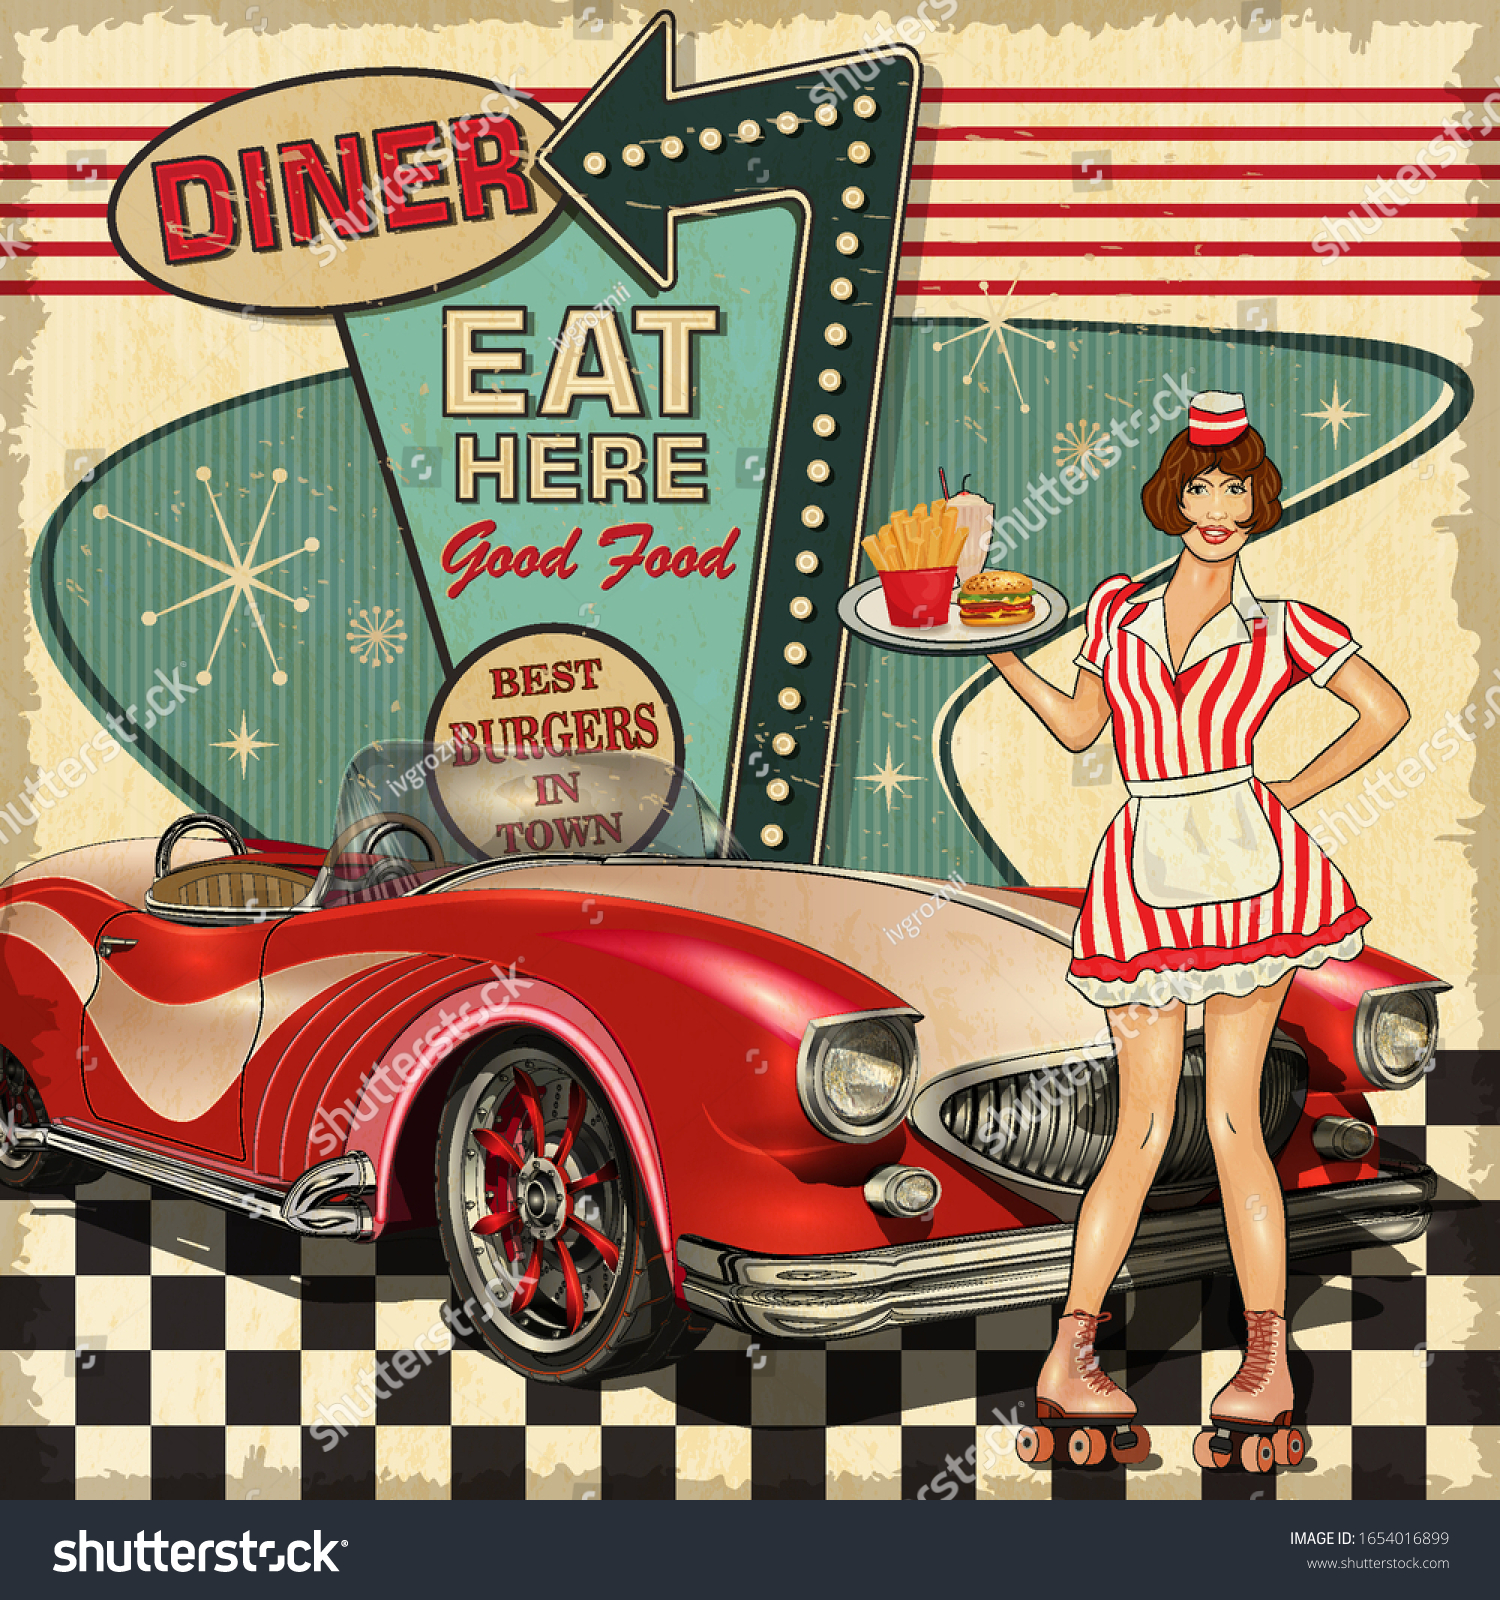 Vintage Diner Poster Traditional American Style Stock Vector Royalty Free 1654016899